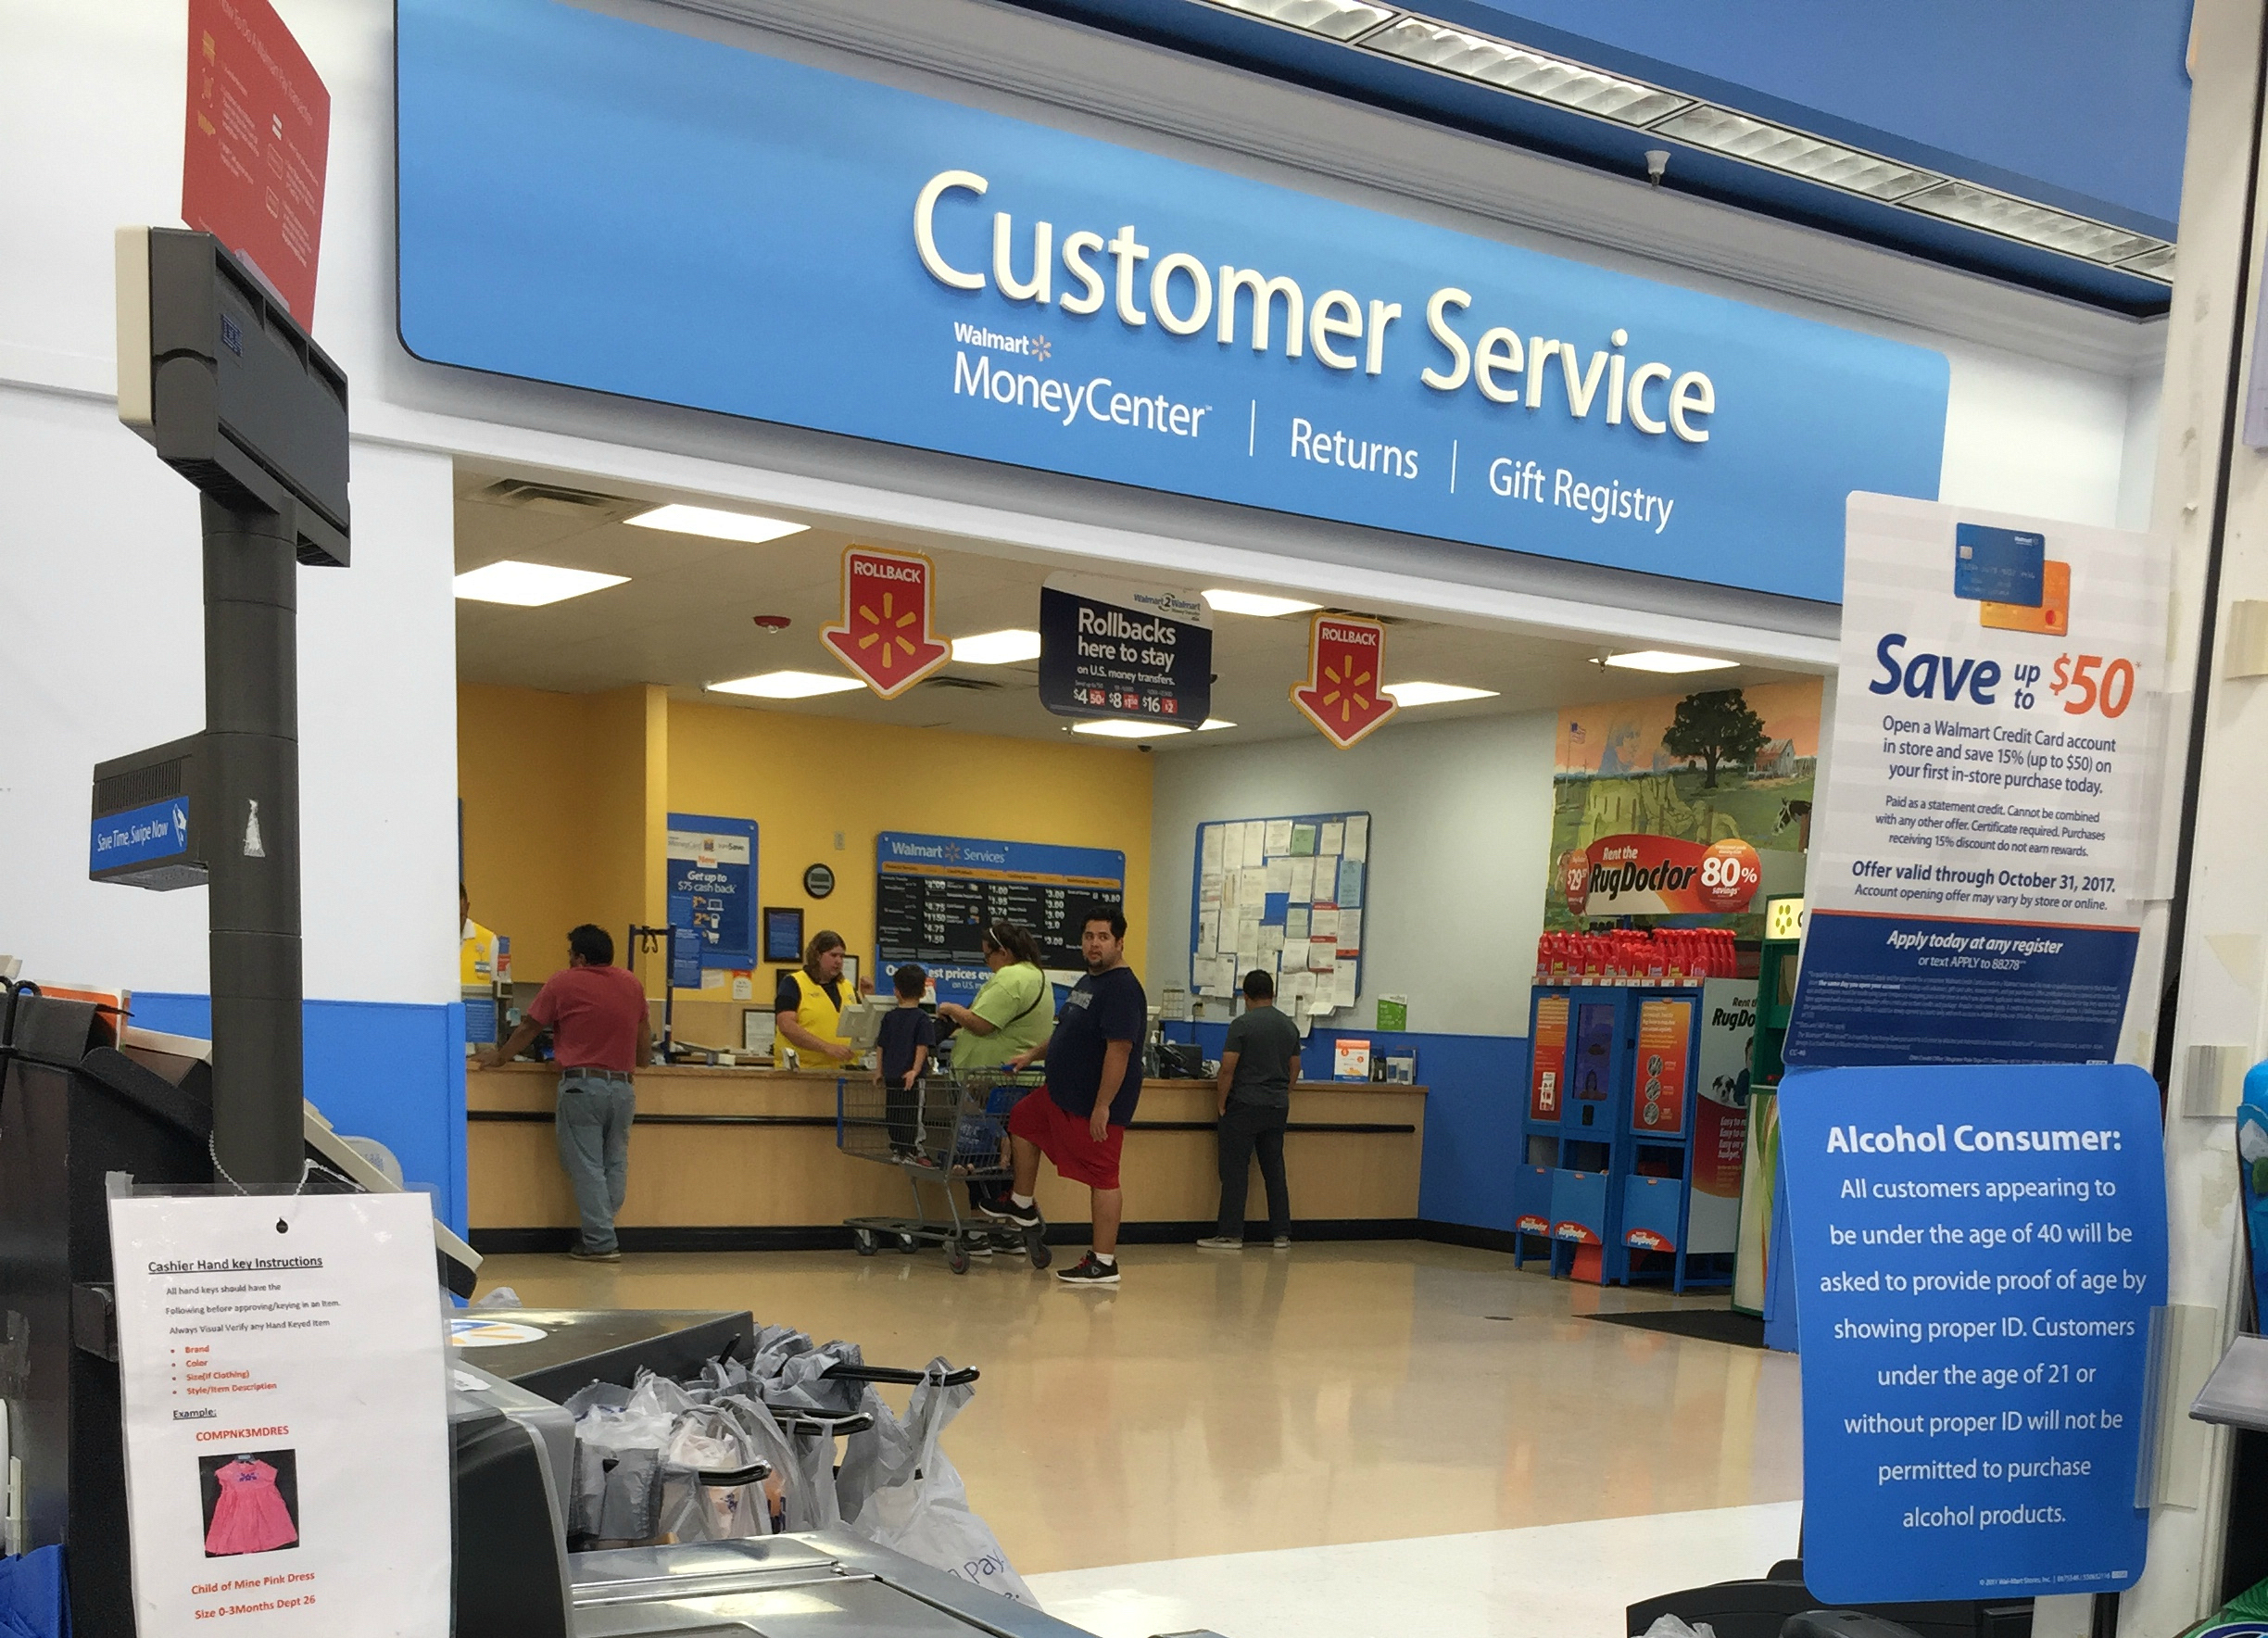 Walmart free 2-day shipping – Walmart Customer Service